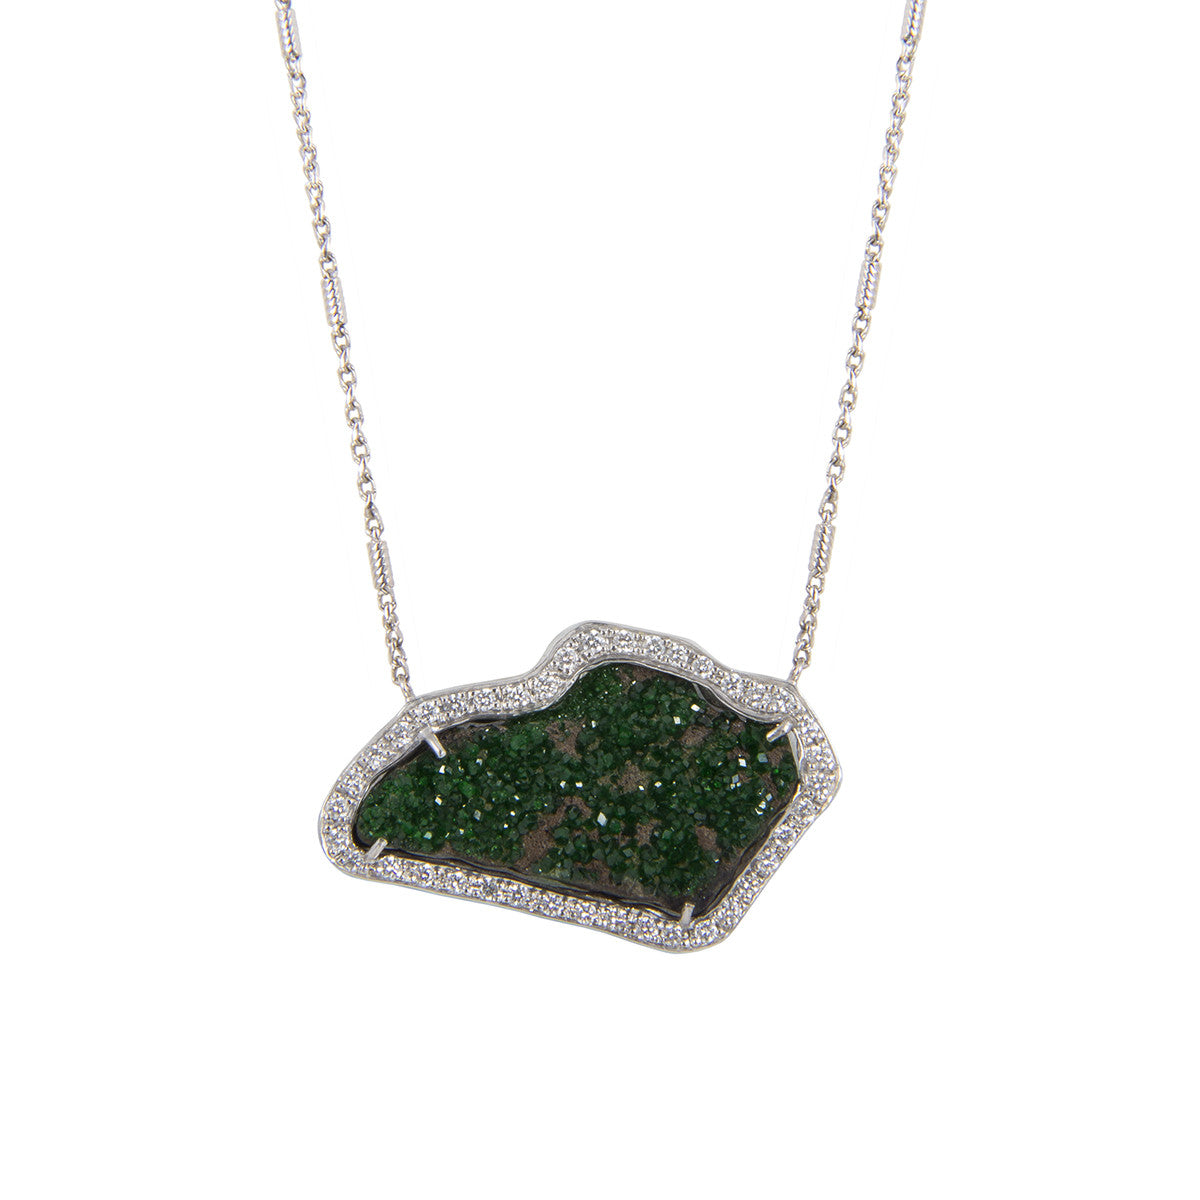 Crystallized Meteor Necklace